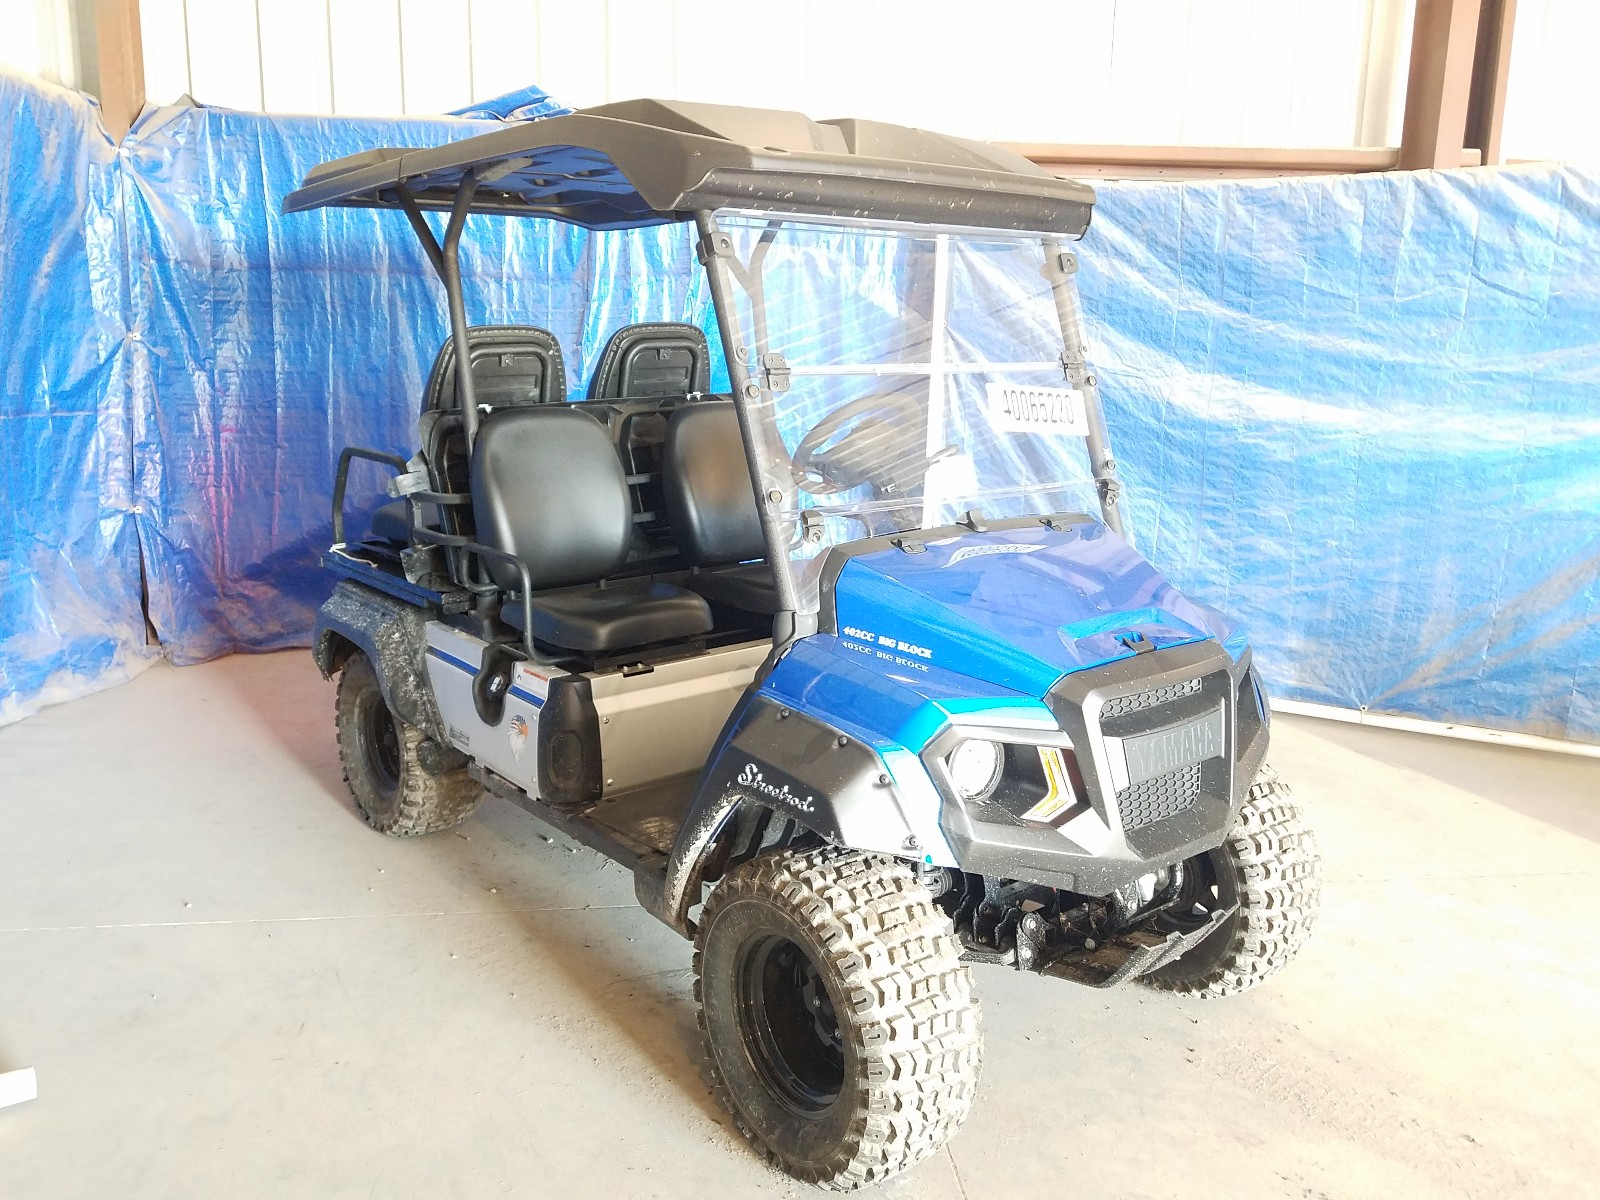 2000 Yamaha Golf Cart In Fl Orlando North Can1ces2nmb2 For Sale Autobidmaster